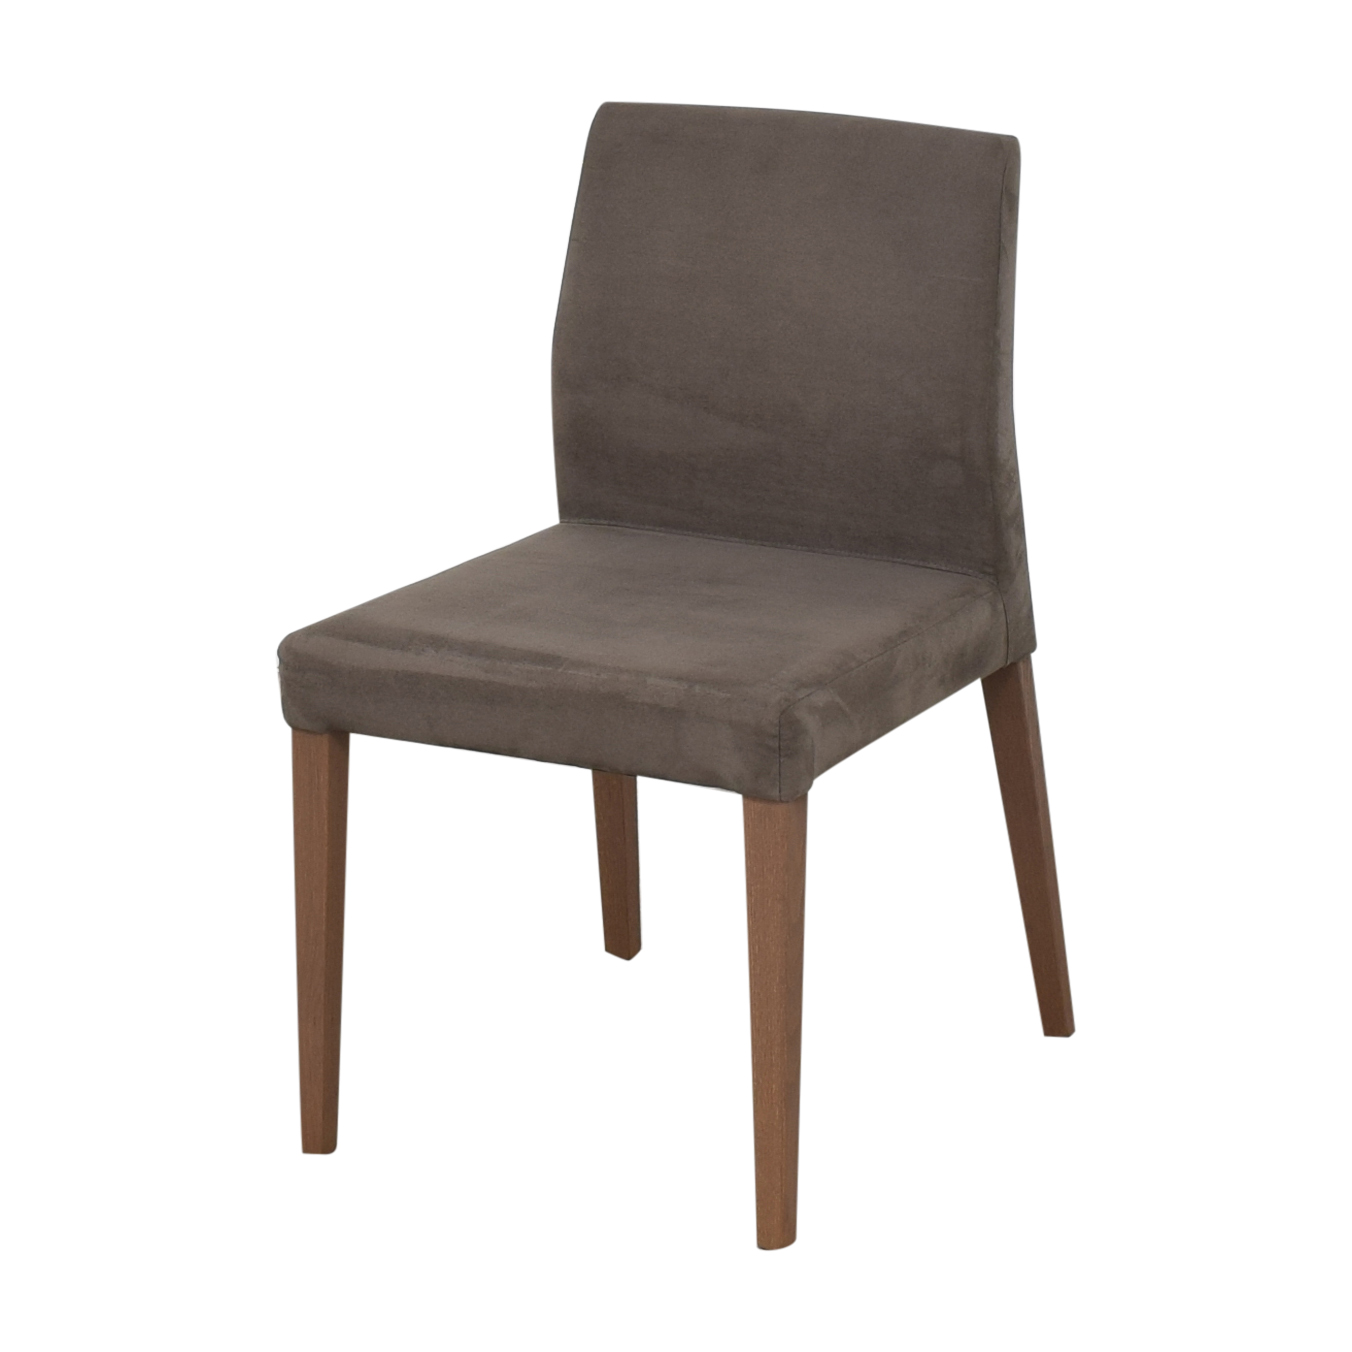 Crate & Barrel Crate & Barrel Lowe Upholstered Dining Chairs